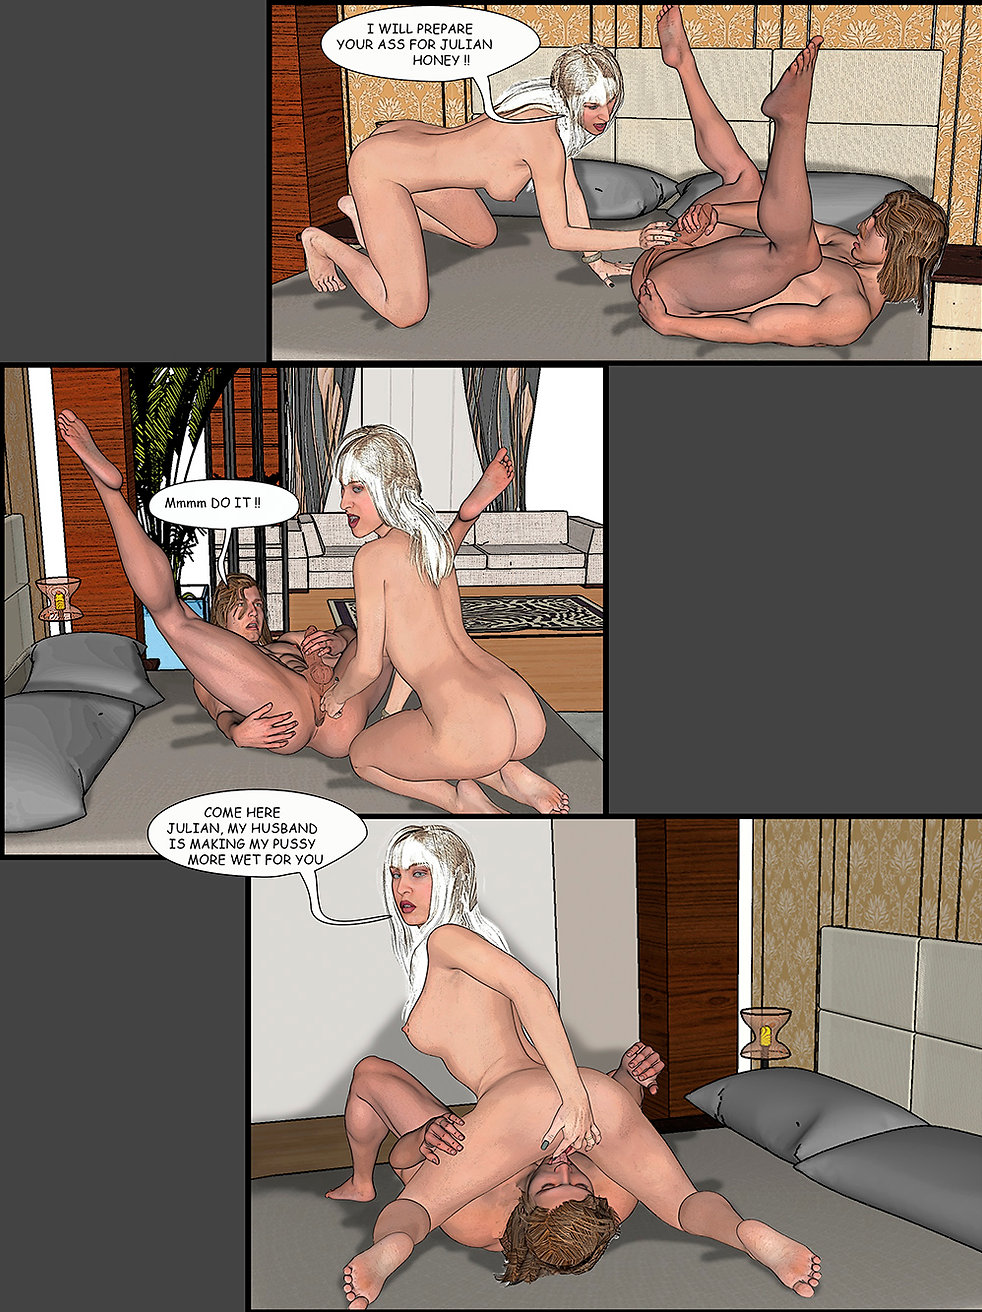 adult comics,bisex comics, bisexual, bi curious,porn comics,bi group,porn comics, adult comics, lgbt